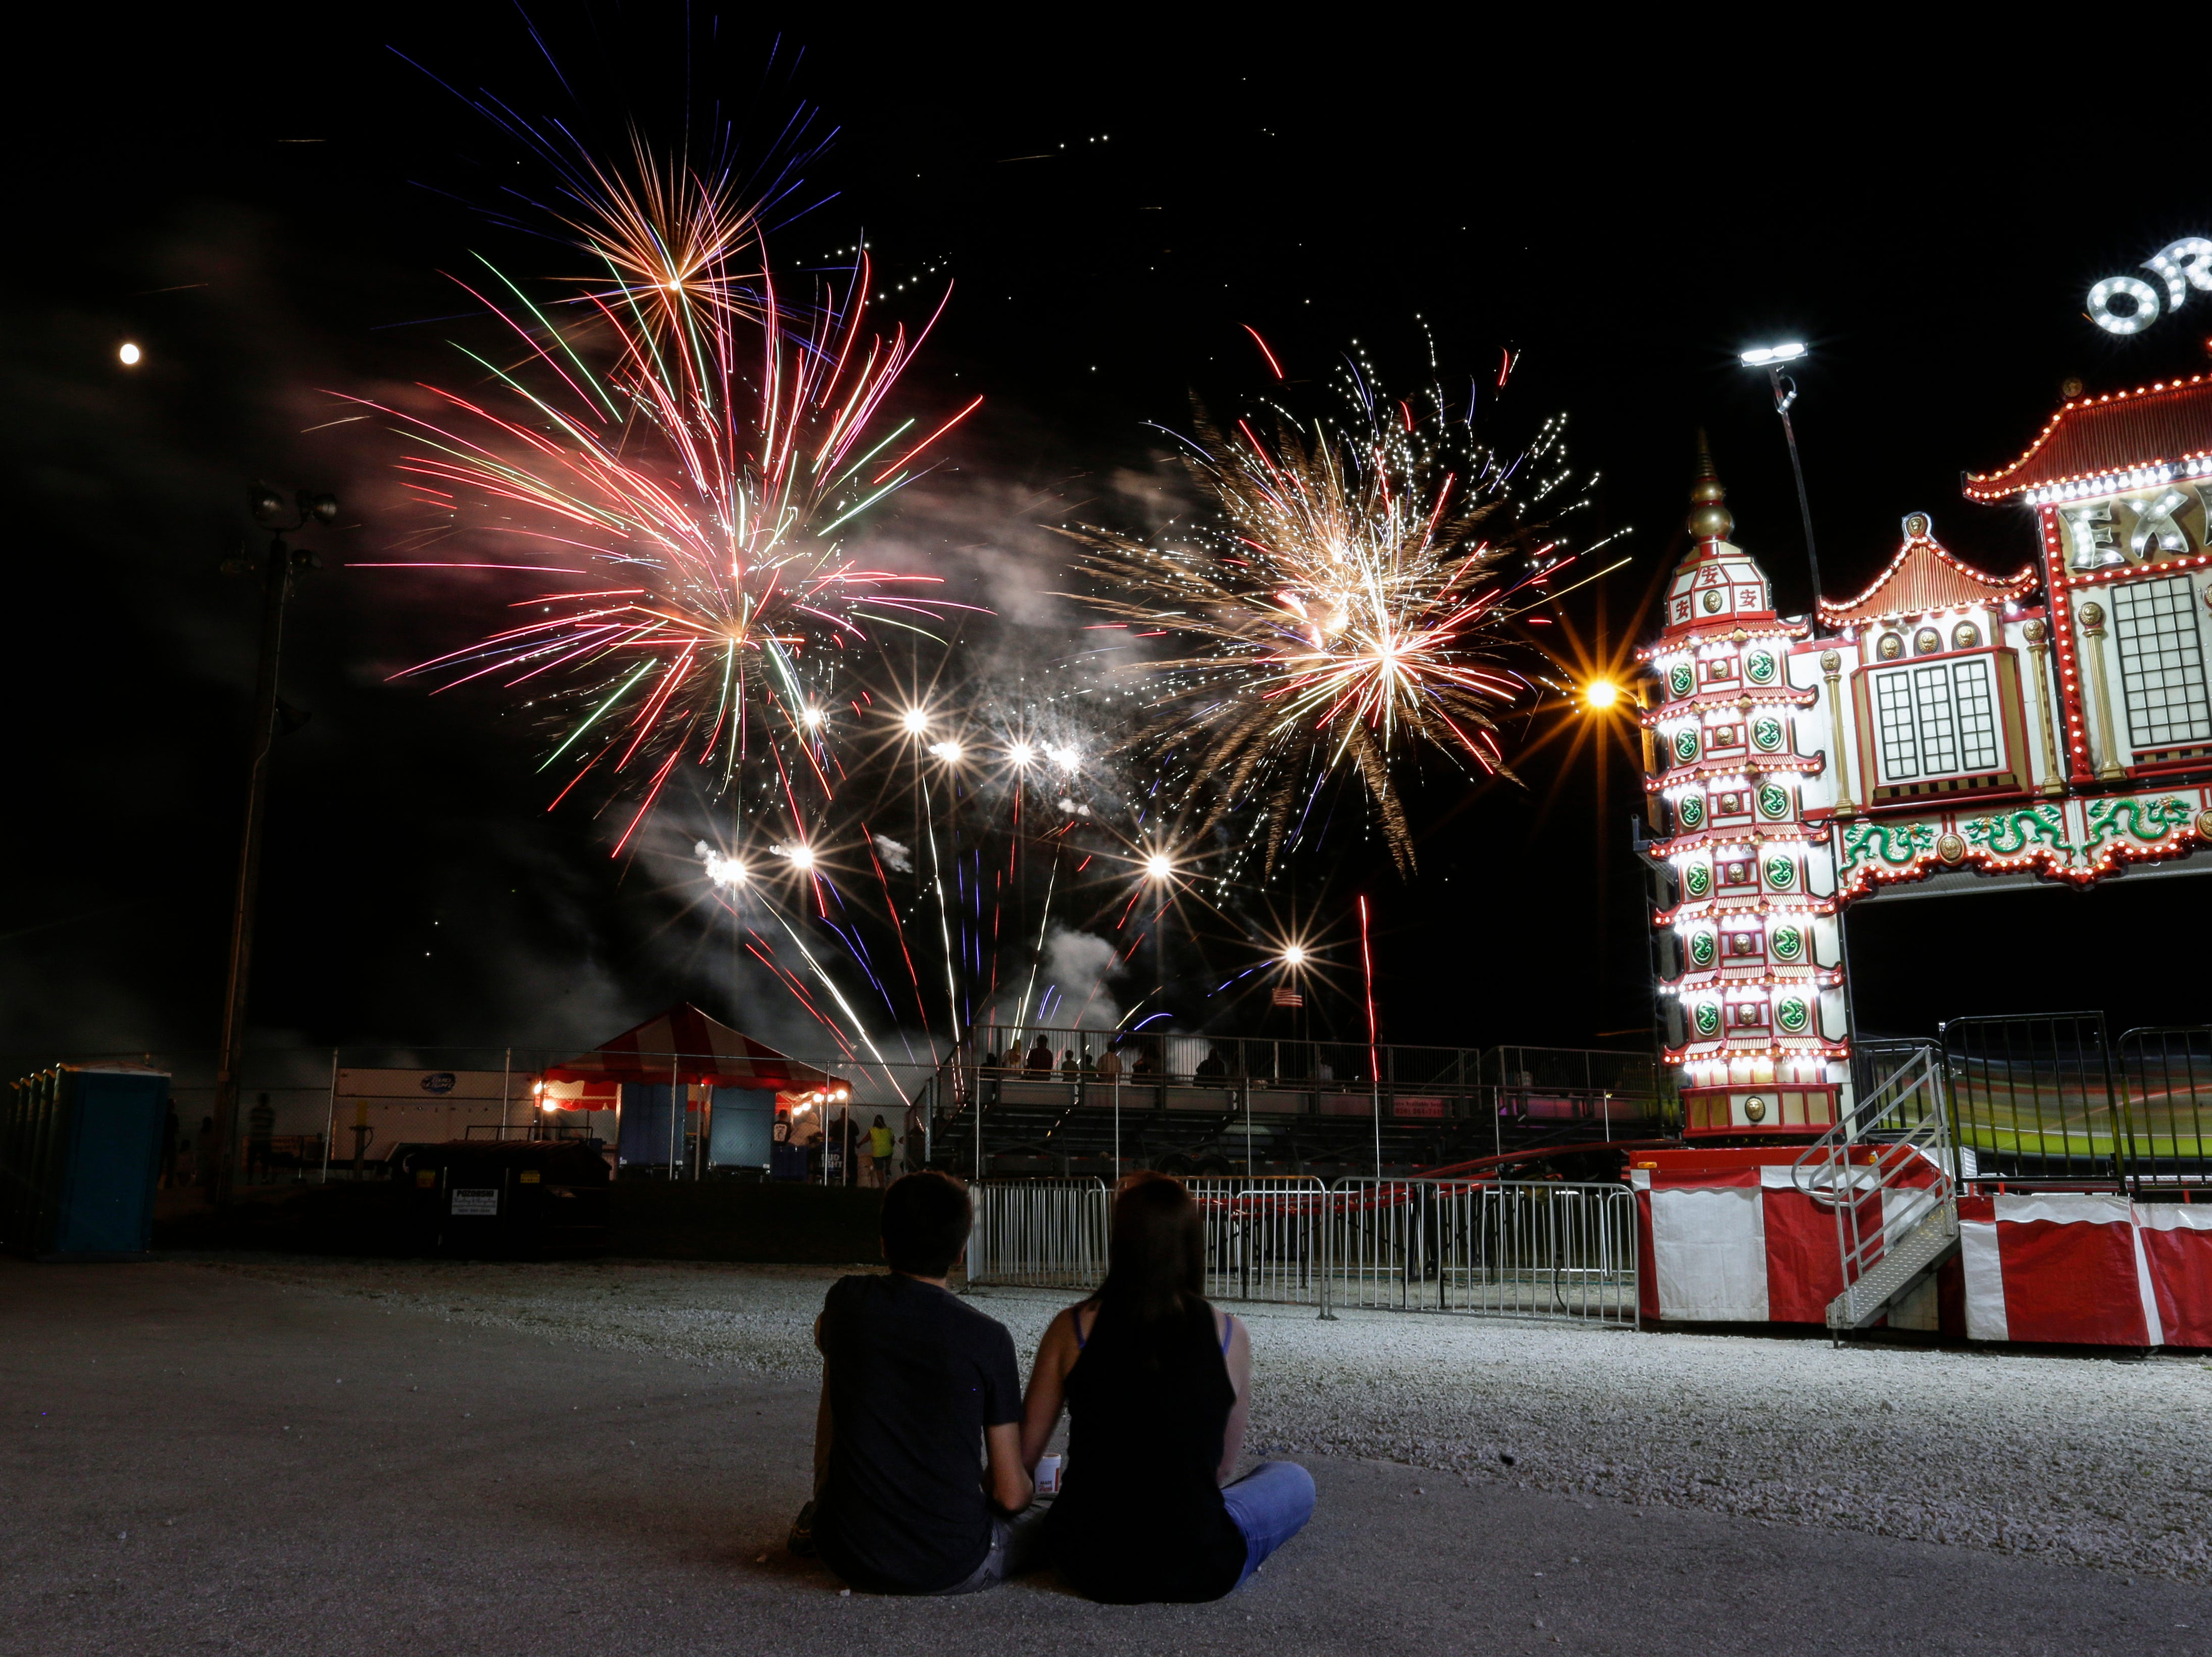 Max Schoett, 16, and Olivia Lutterman, 17, of Manitowoc watch the fireworks go off next to a nearly full moon at the Manitowoc County Fair Wednesday, August 22, 2018, in Manitowoc, Wis. The show capped off the fair's first full day of activities at the fairgrounds. Josh Clark/USA TODAY NETWORK-Wisconsin